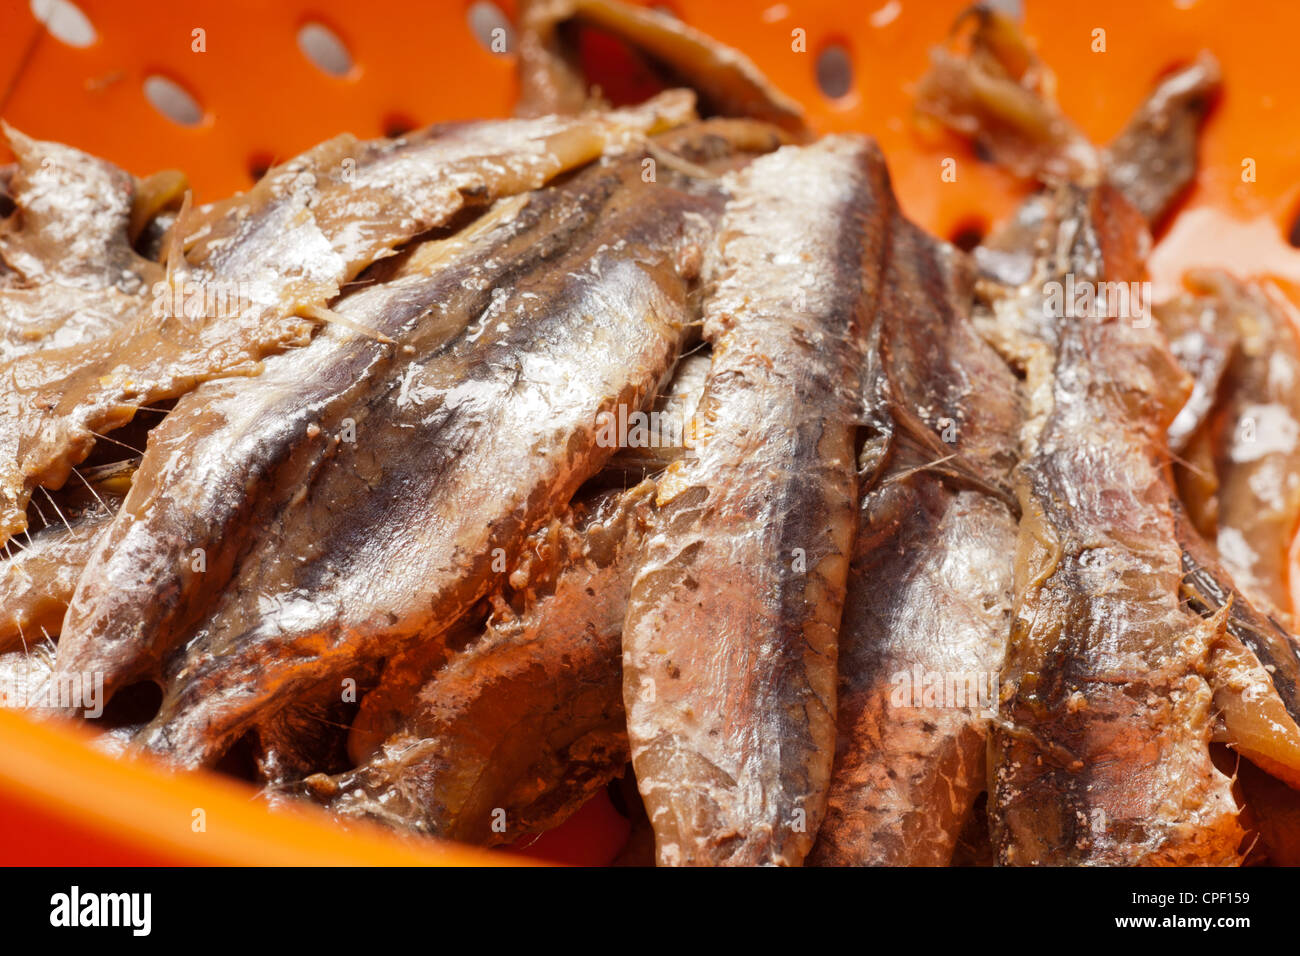 salted anchovies - Stock Image